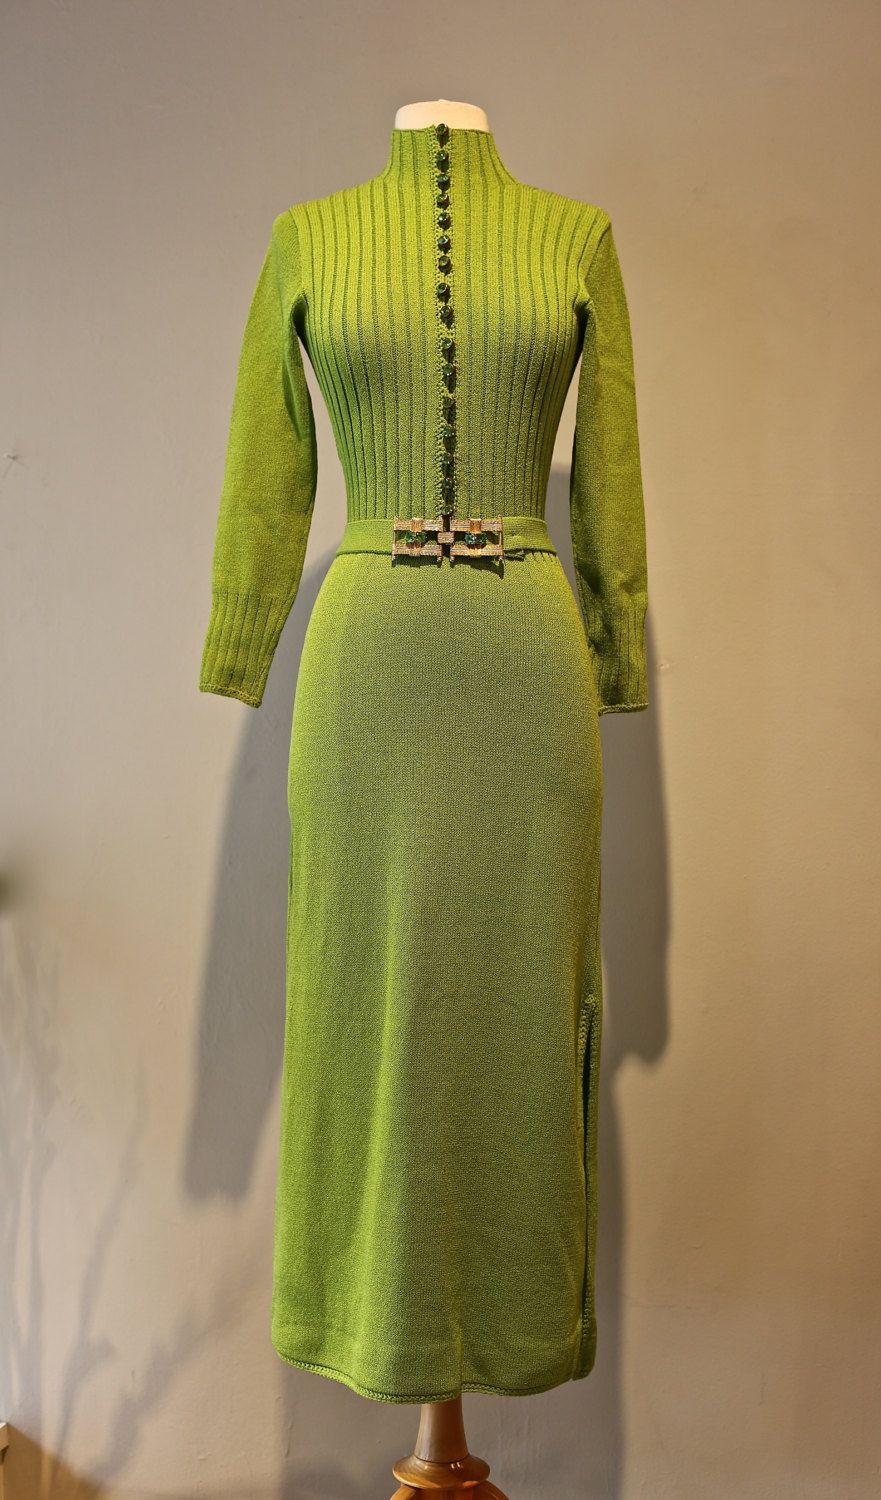 06610a26d Vintage 1970s St. John Knit Gown ~ Vintage 70s Lime Green St. John Knit  Dress With Rhinestone Buttons by xtabayvintage on Etsy